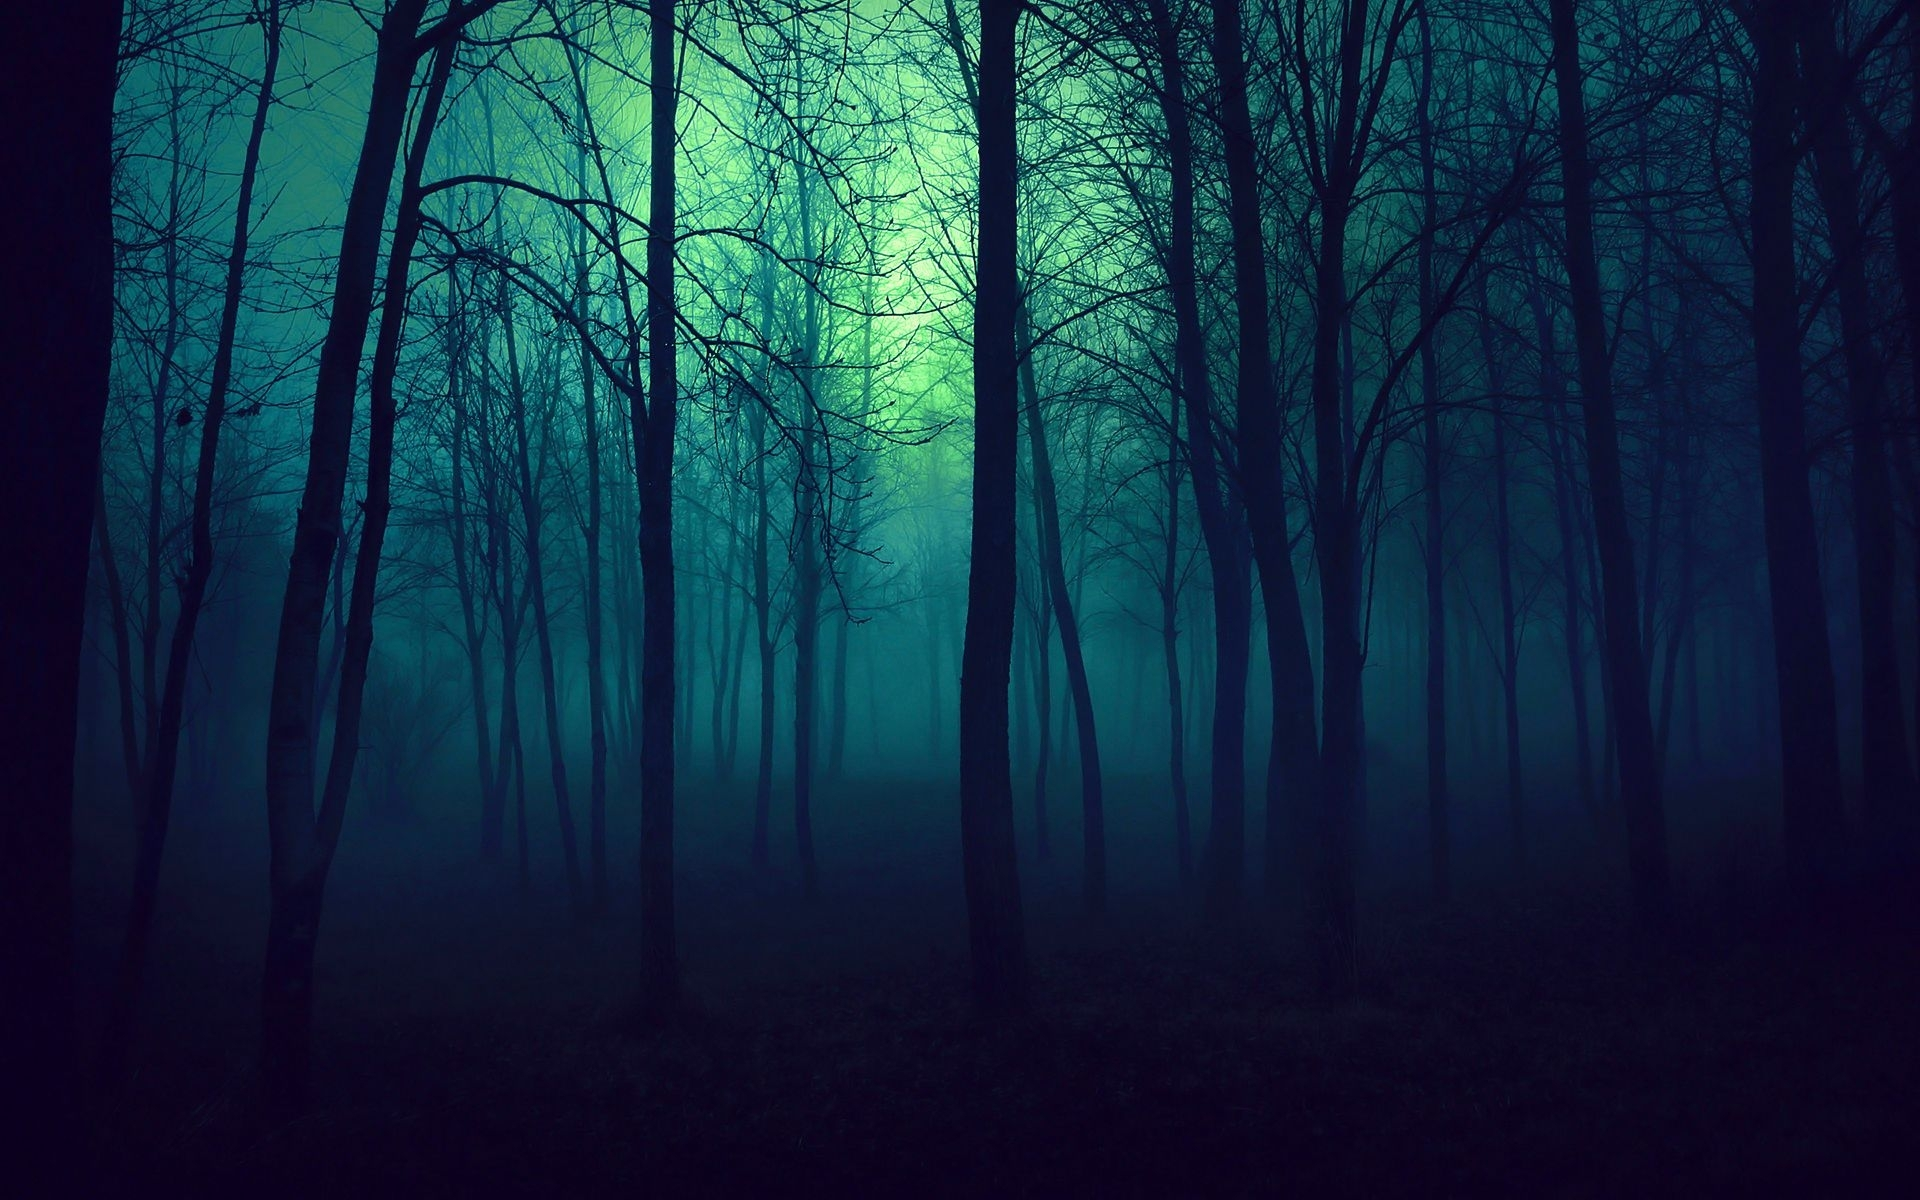 10 Ideal And Newest Dark Forest Background Tumblr For Desktop With FULL HD 1080p 1920 X 1080 FREE DOWNLOAD